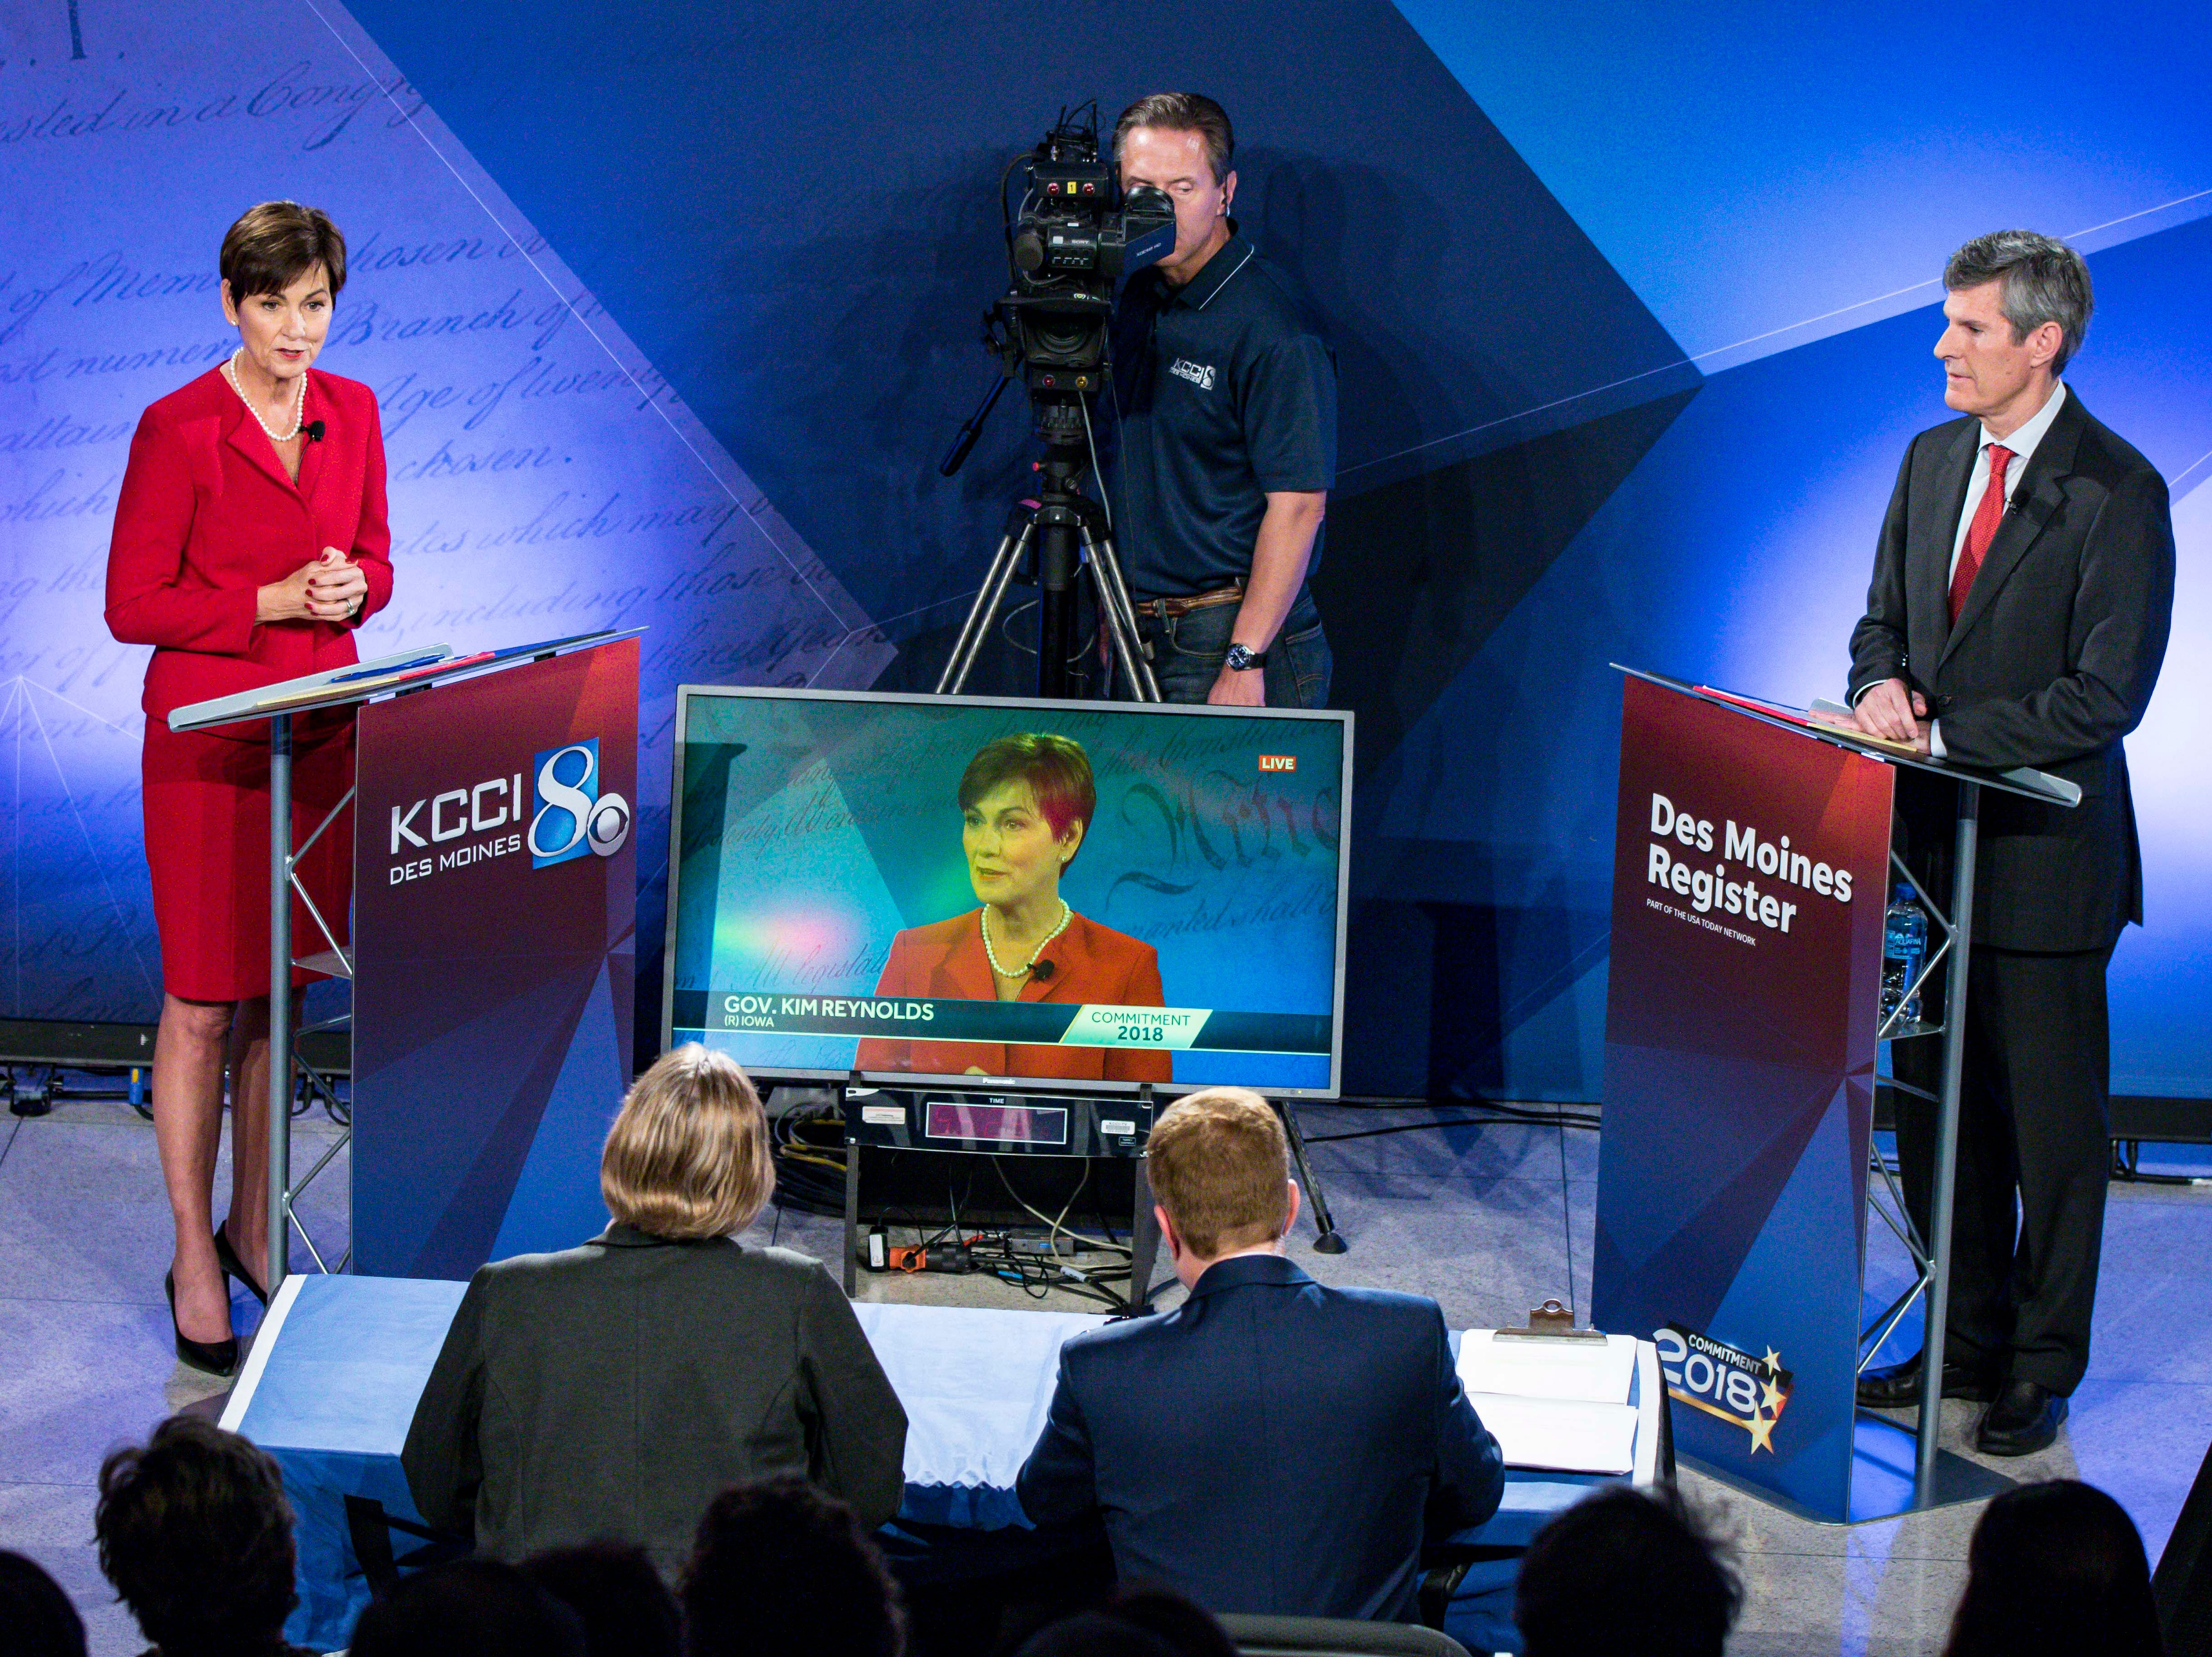 Republican Iowa Gov. Kim Reynolds and Democratic challenger Fred Hubbell face each other for the first time in a debate hosted by the Des Moines Register and KCCI Wednesday, Oct. 10, 2018, at Des Moines Area Community College in Ankeny, Iowa. The debate is moderated by the Register's Kathie Obradovich and KCCI's Steve Karlin.